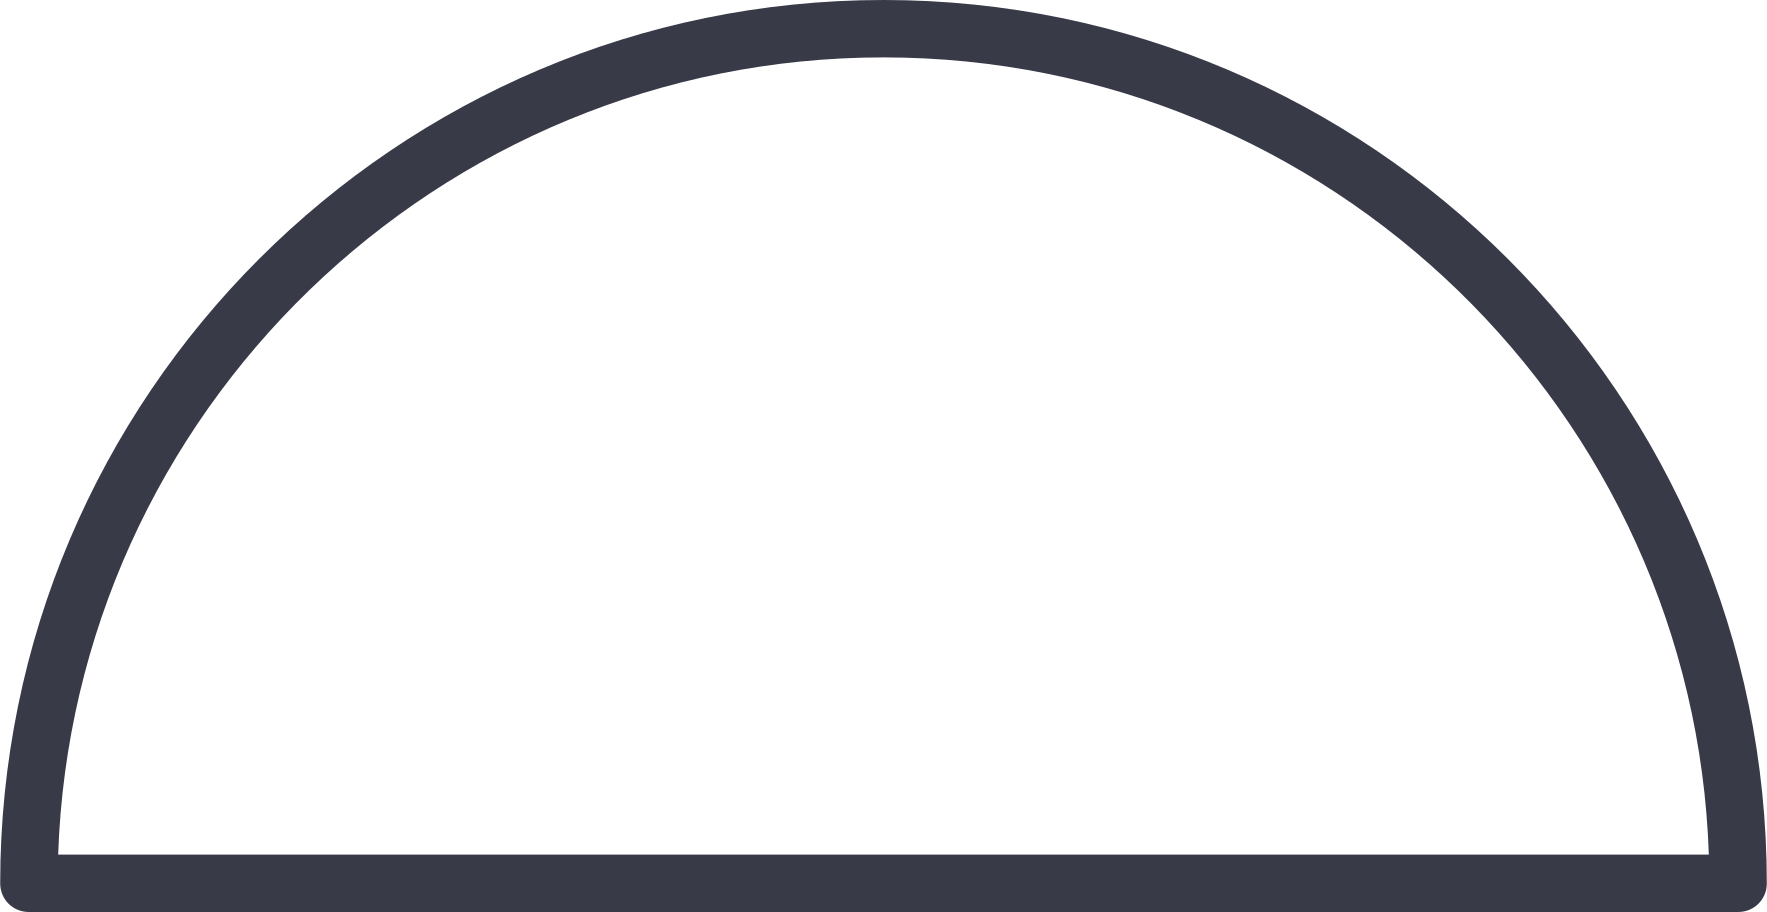 semicircle shape Clipart illustration in PNG, SVG